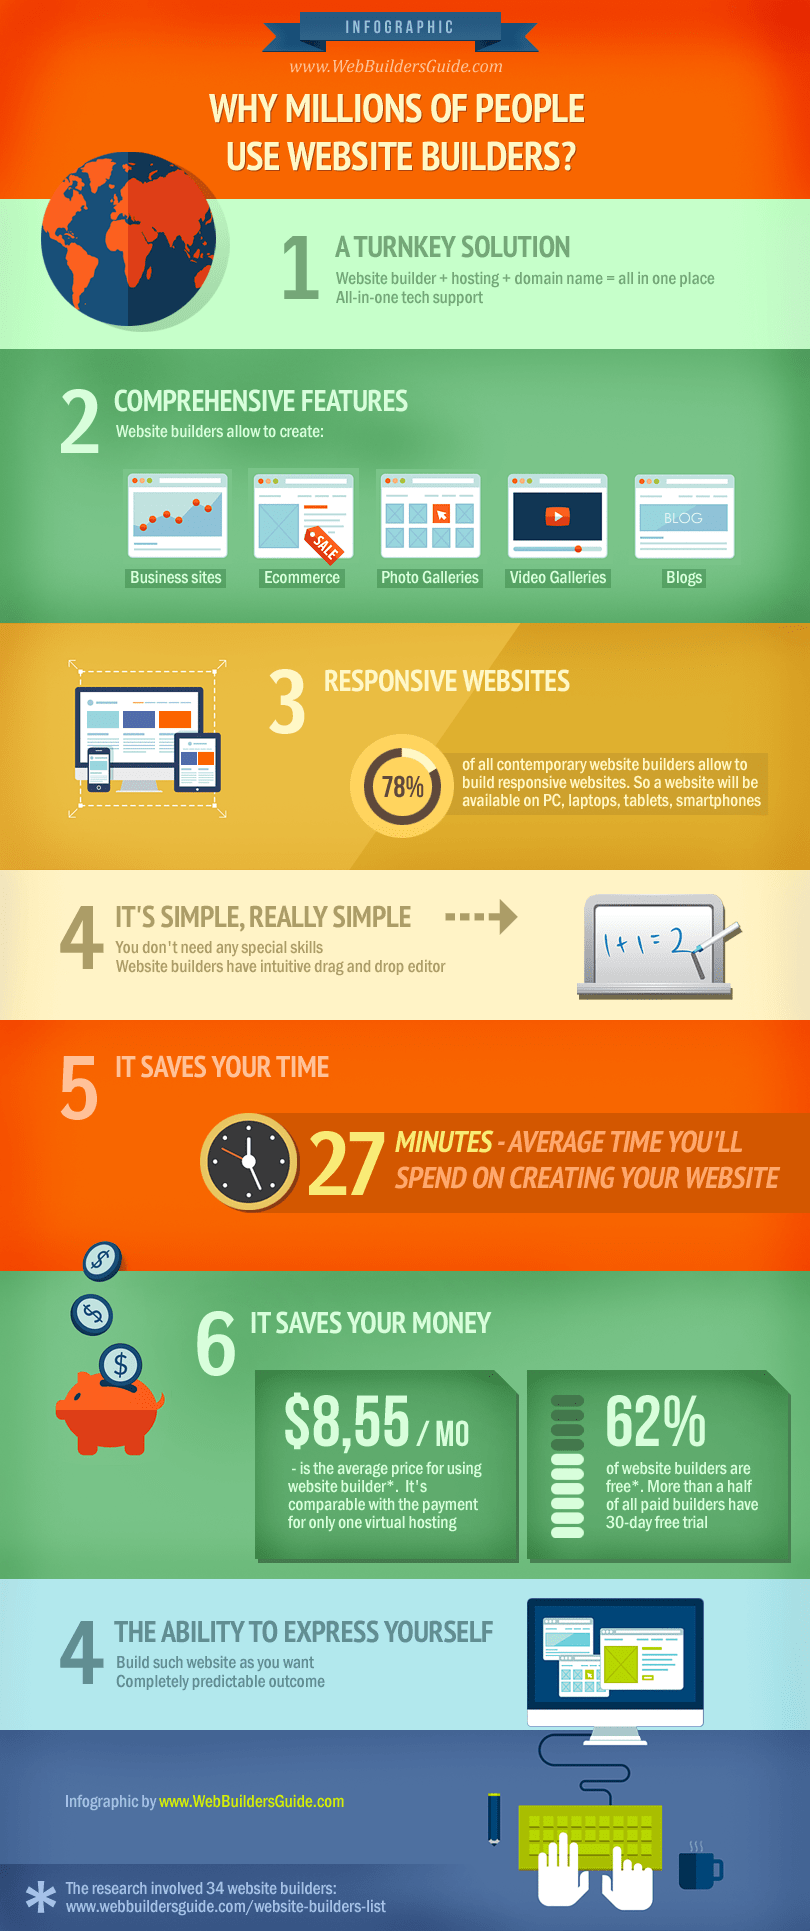 Why millions of people use website builders? - Infographic